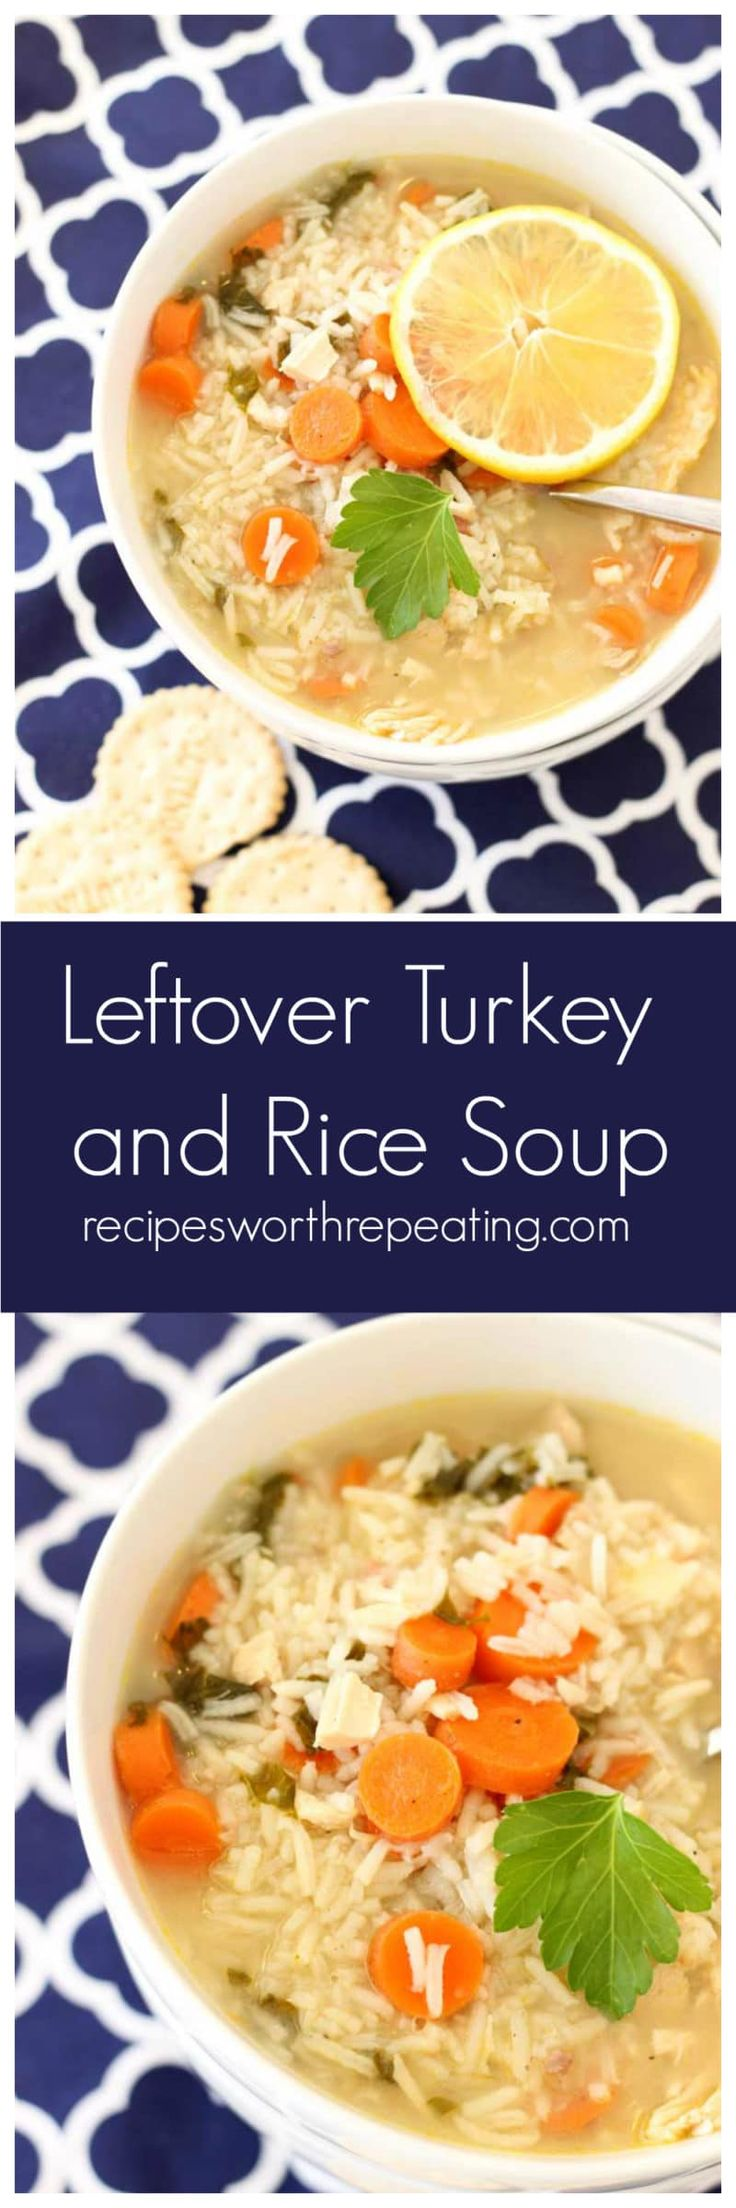 Leftover Turkey and Rice Soup | Recipes Worth Repeating | Gluten Free! This Leftover Turkey and Rice Soup is a perfect way to use up all that leftover turkey from the holidays!